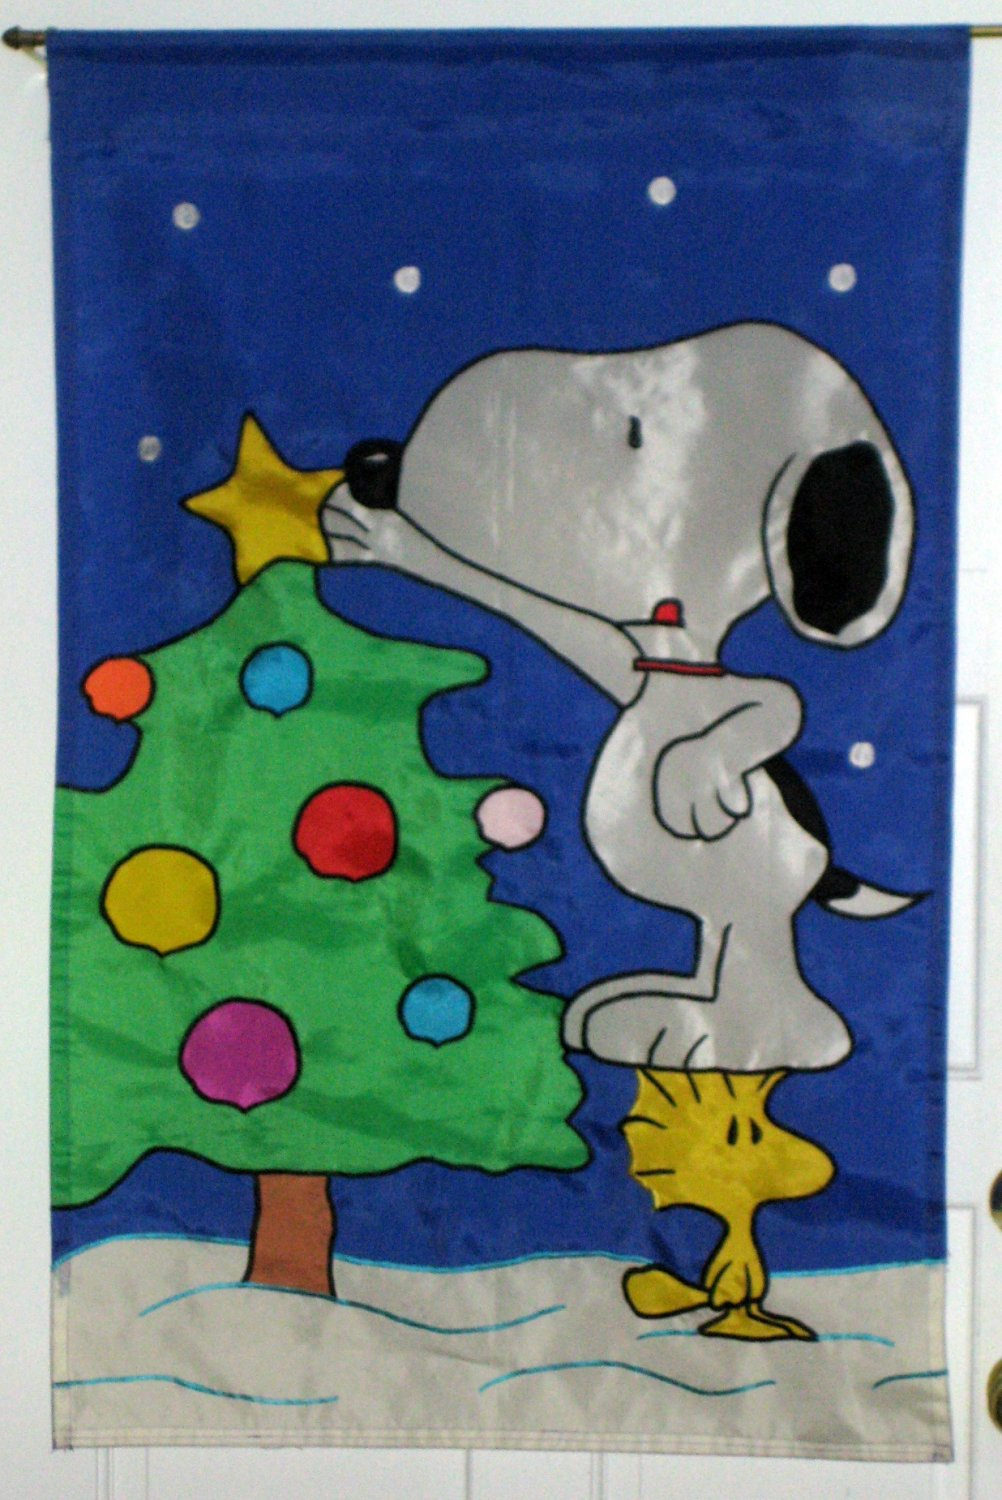 Snoopy Woodstock 28 x 40 Flag Lot Christmas Valentine's Welcome 4th of July Garden Peanuts Gang